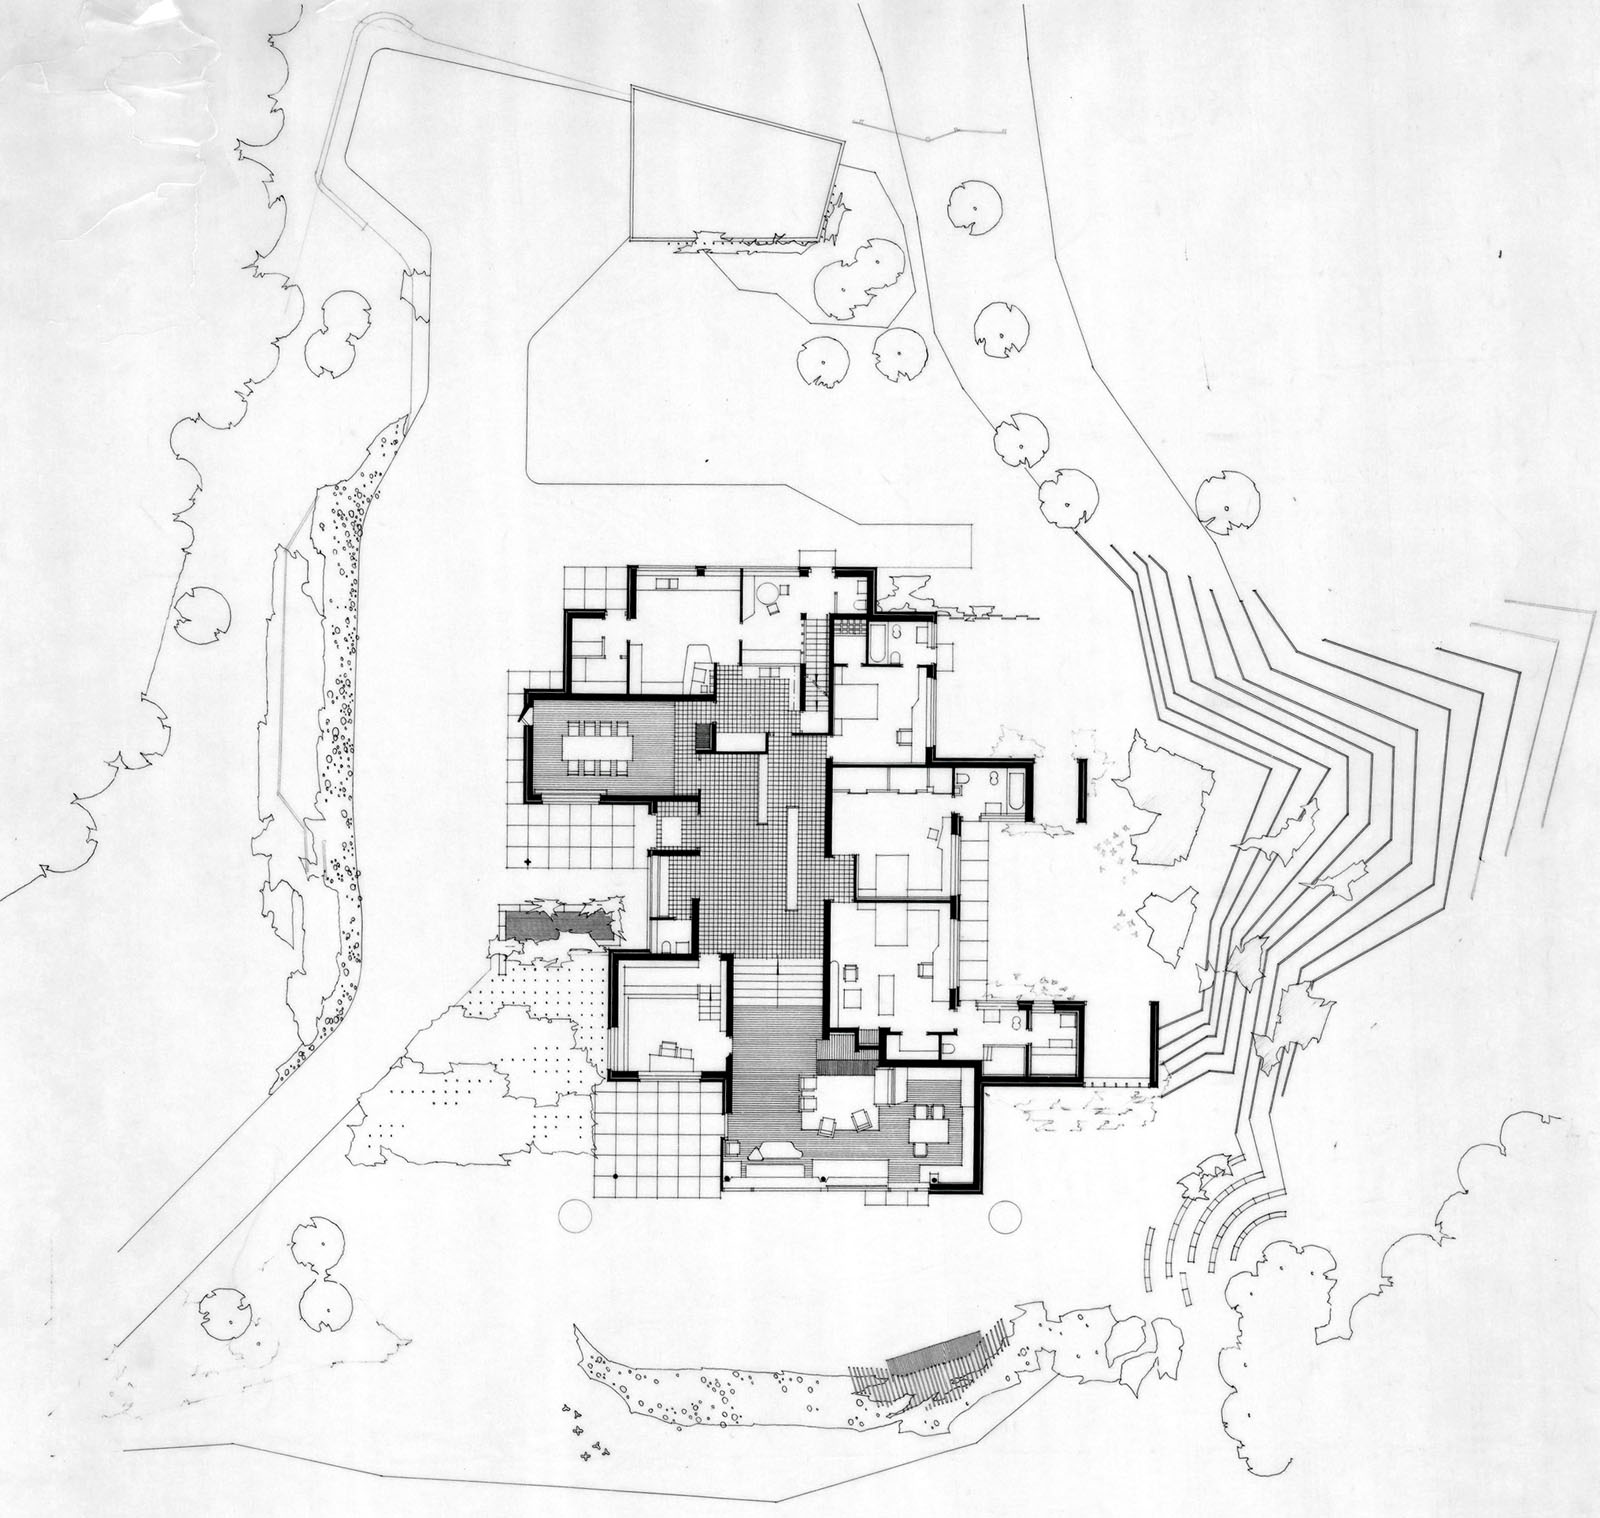 Site and ground floor plan maison louis carré